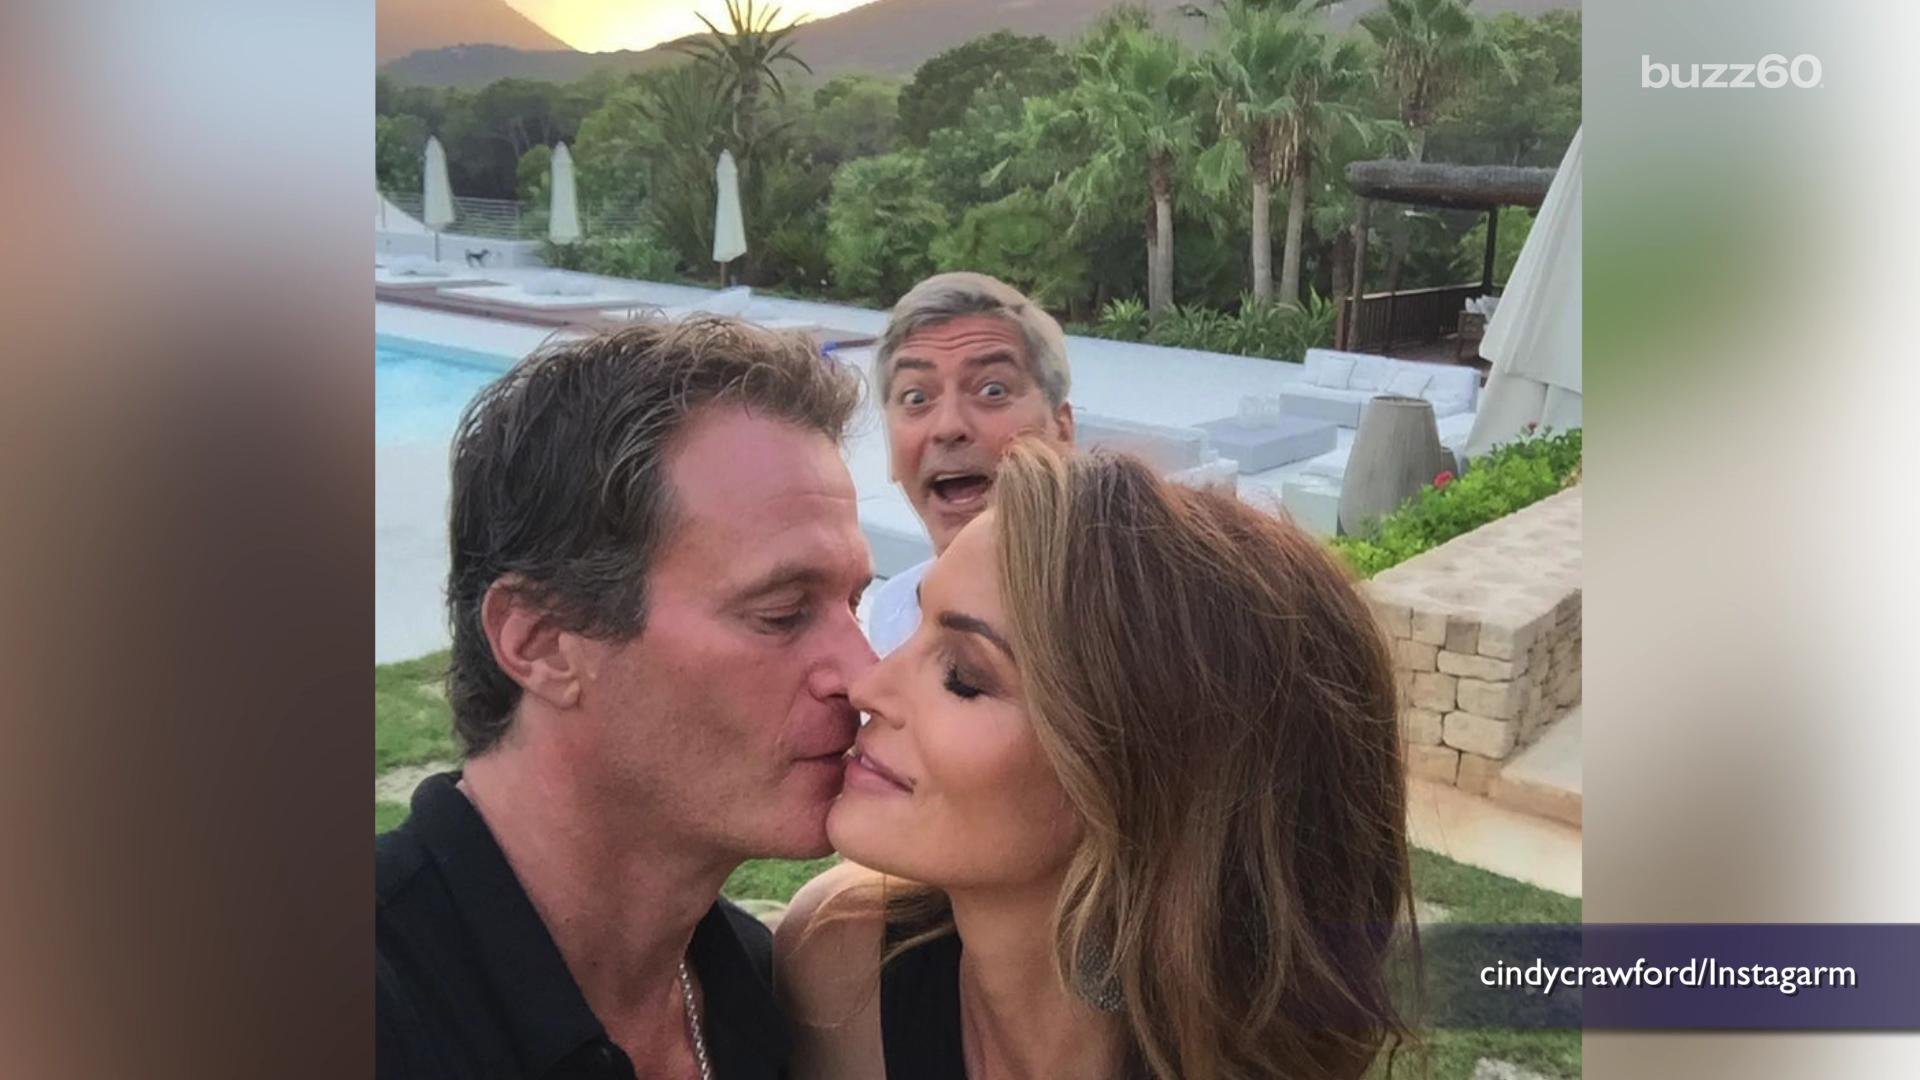 George Clooney photobombs Cindy Crawford